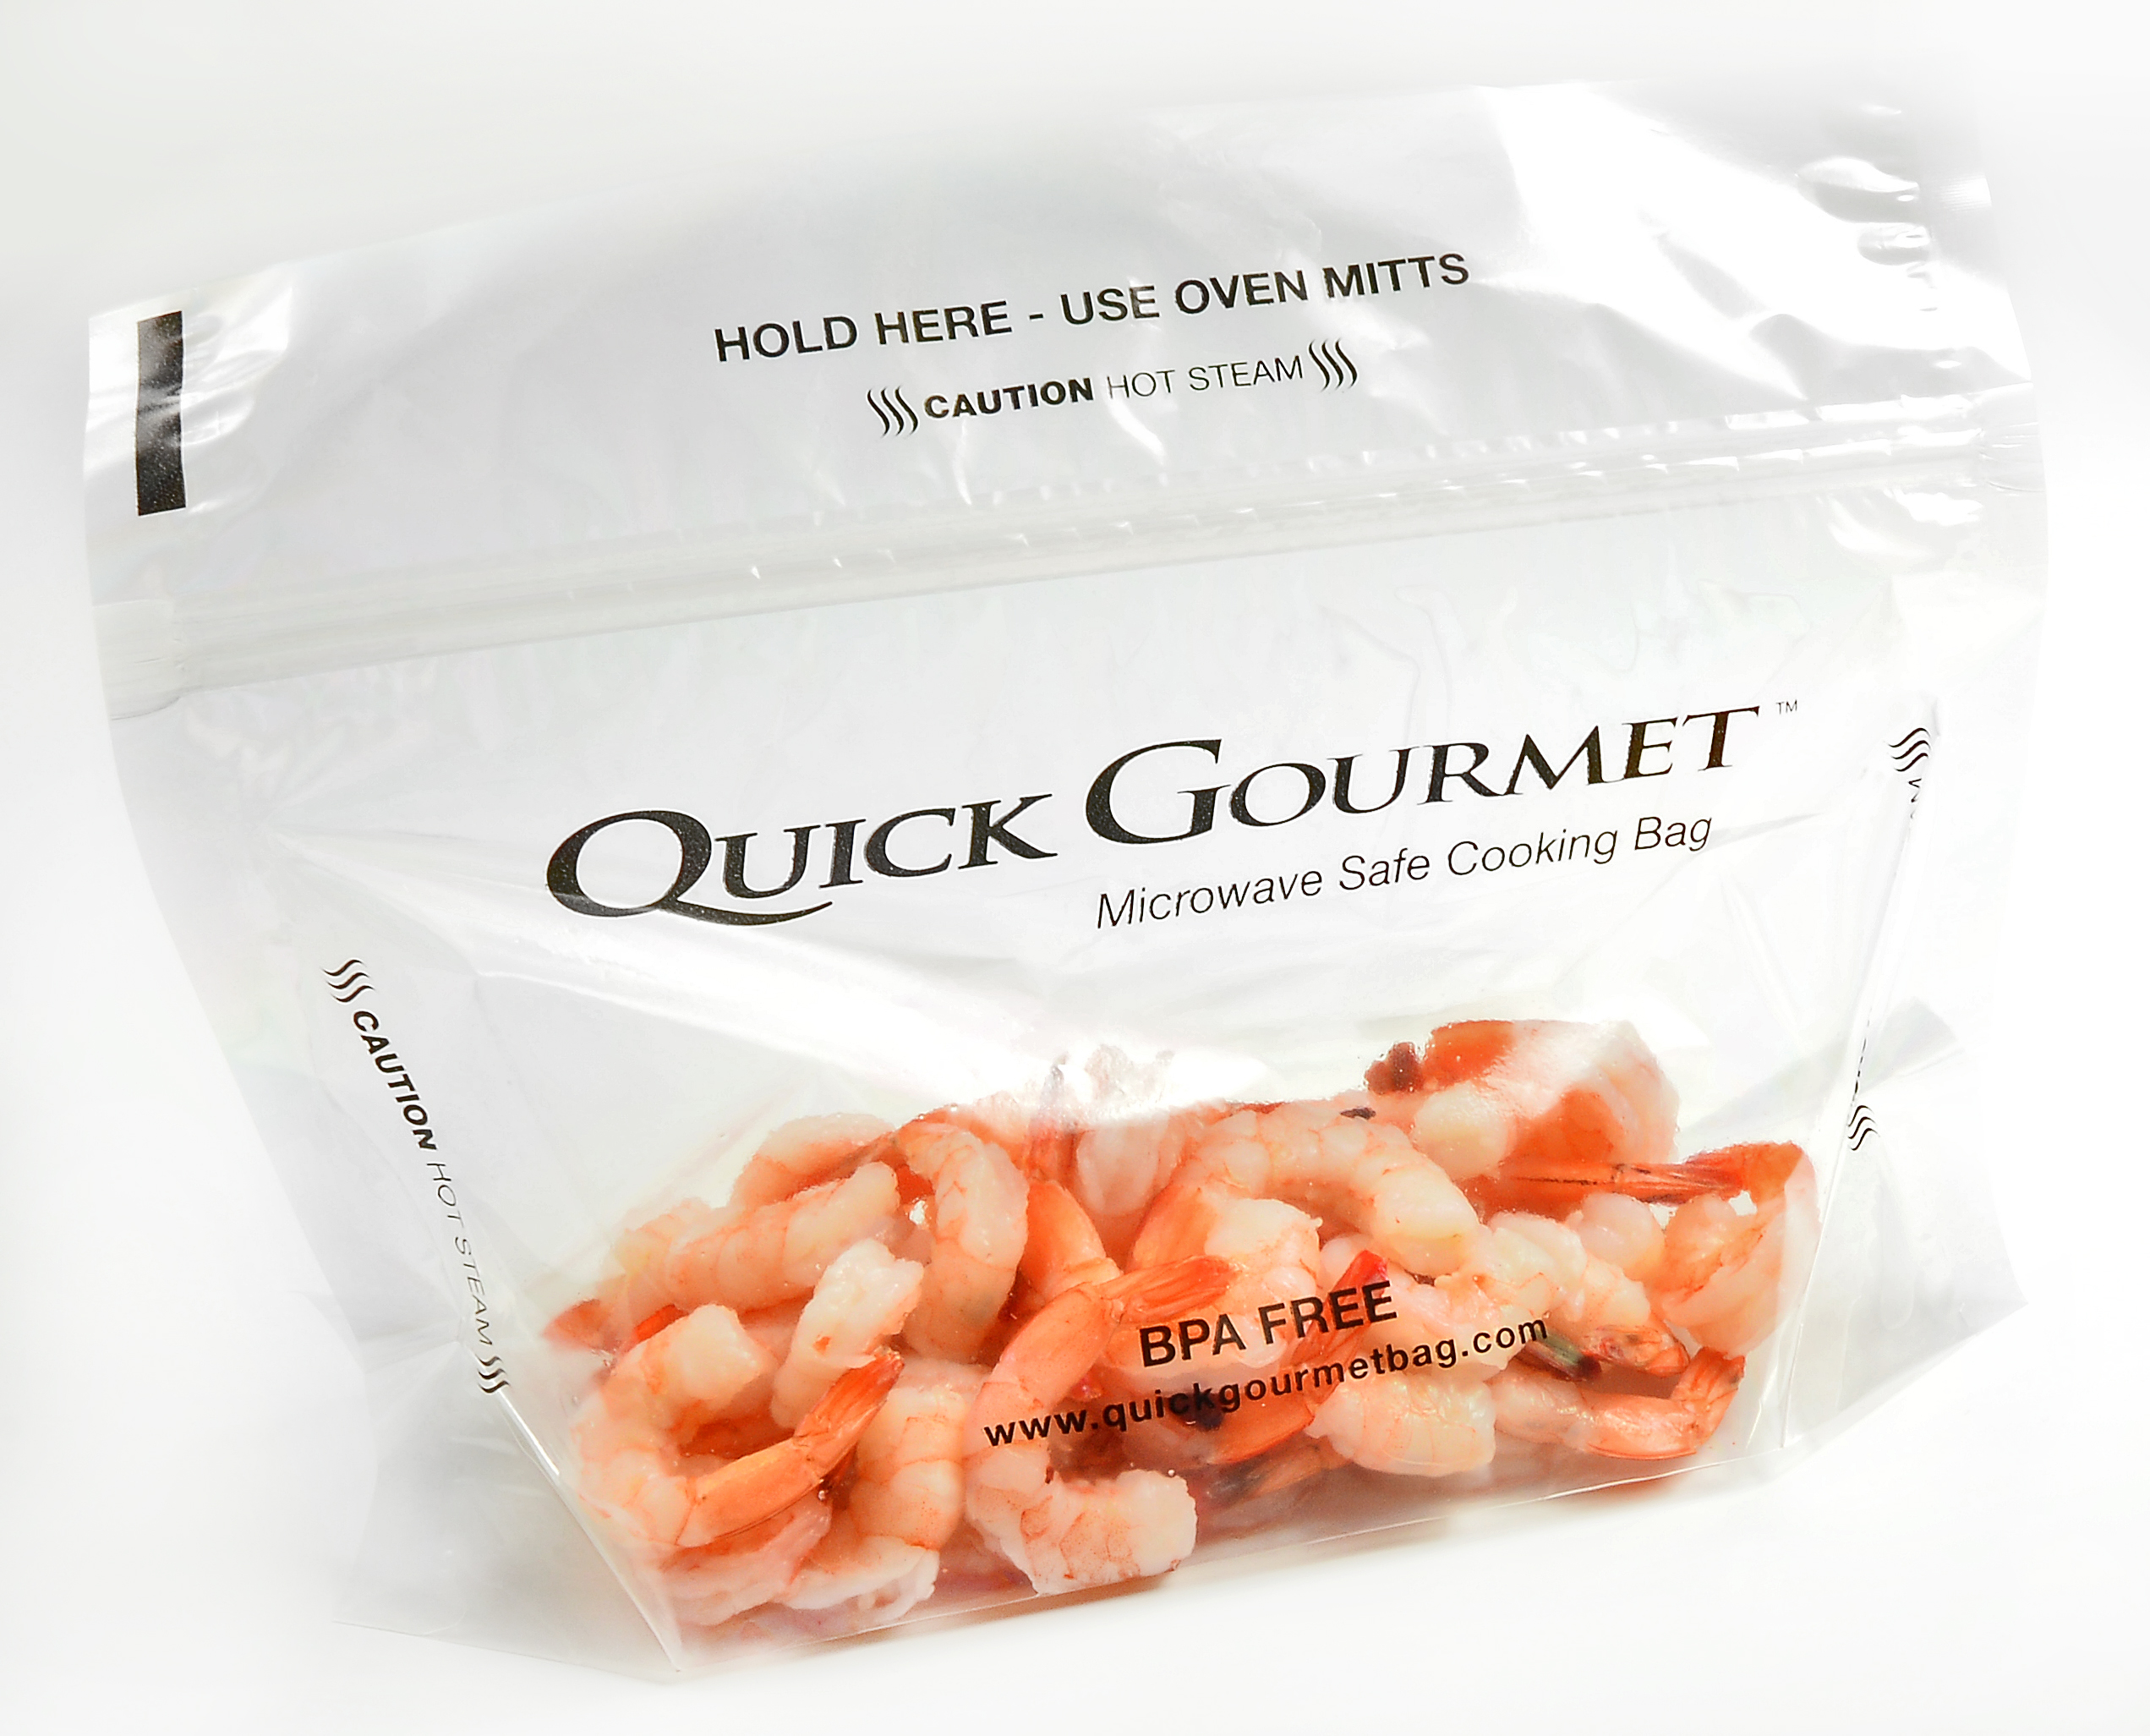 Quick Gourmet Microwave Steam Bag For Healhty Meals